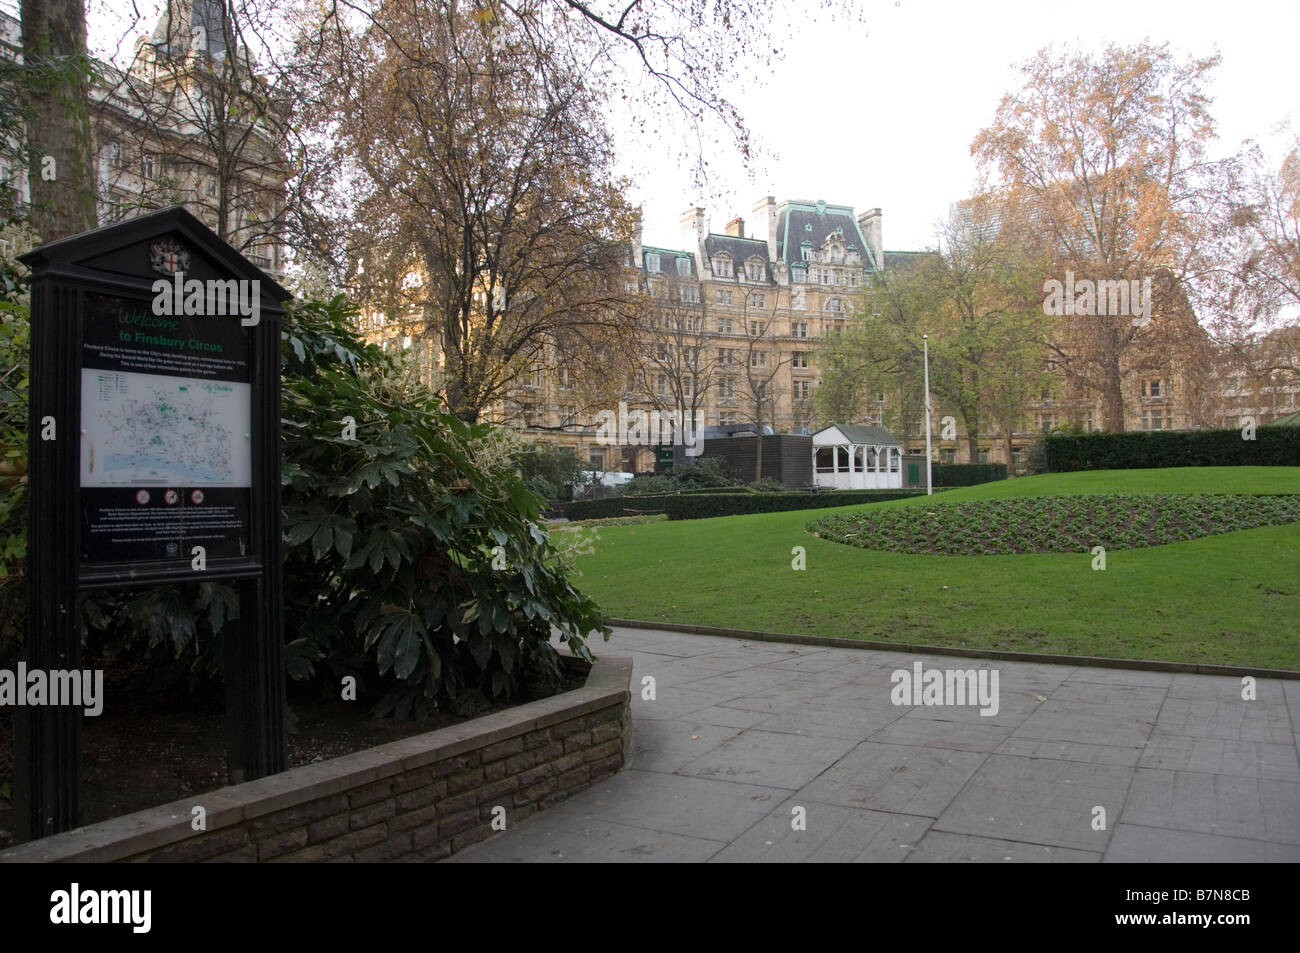 Entrance to Finsbury Circus Park, City of London, England - Stock Image